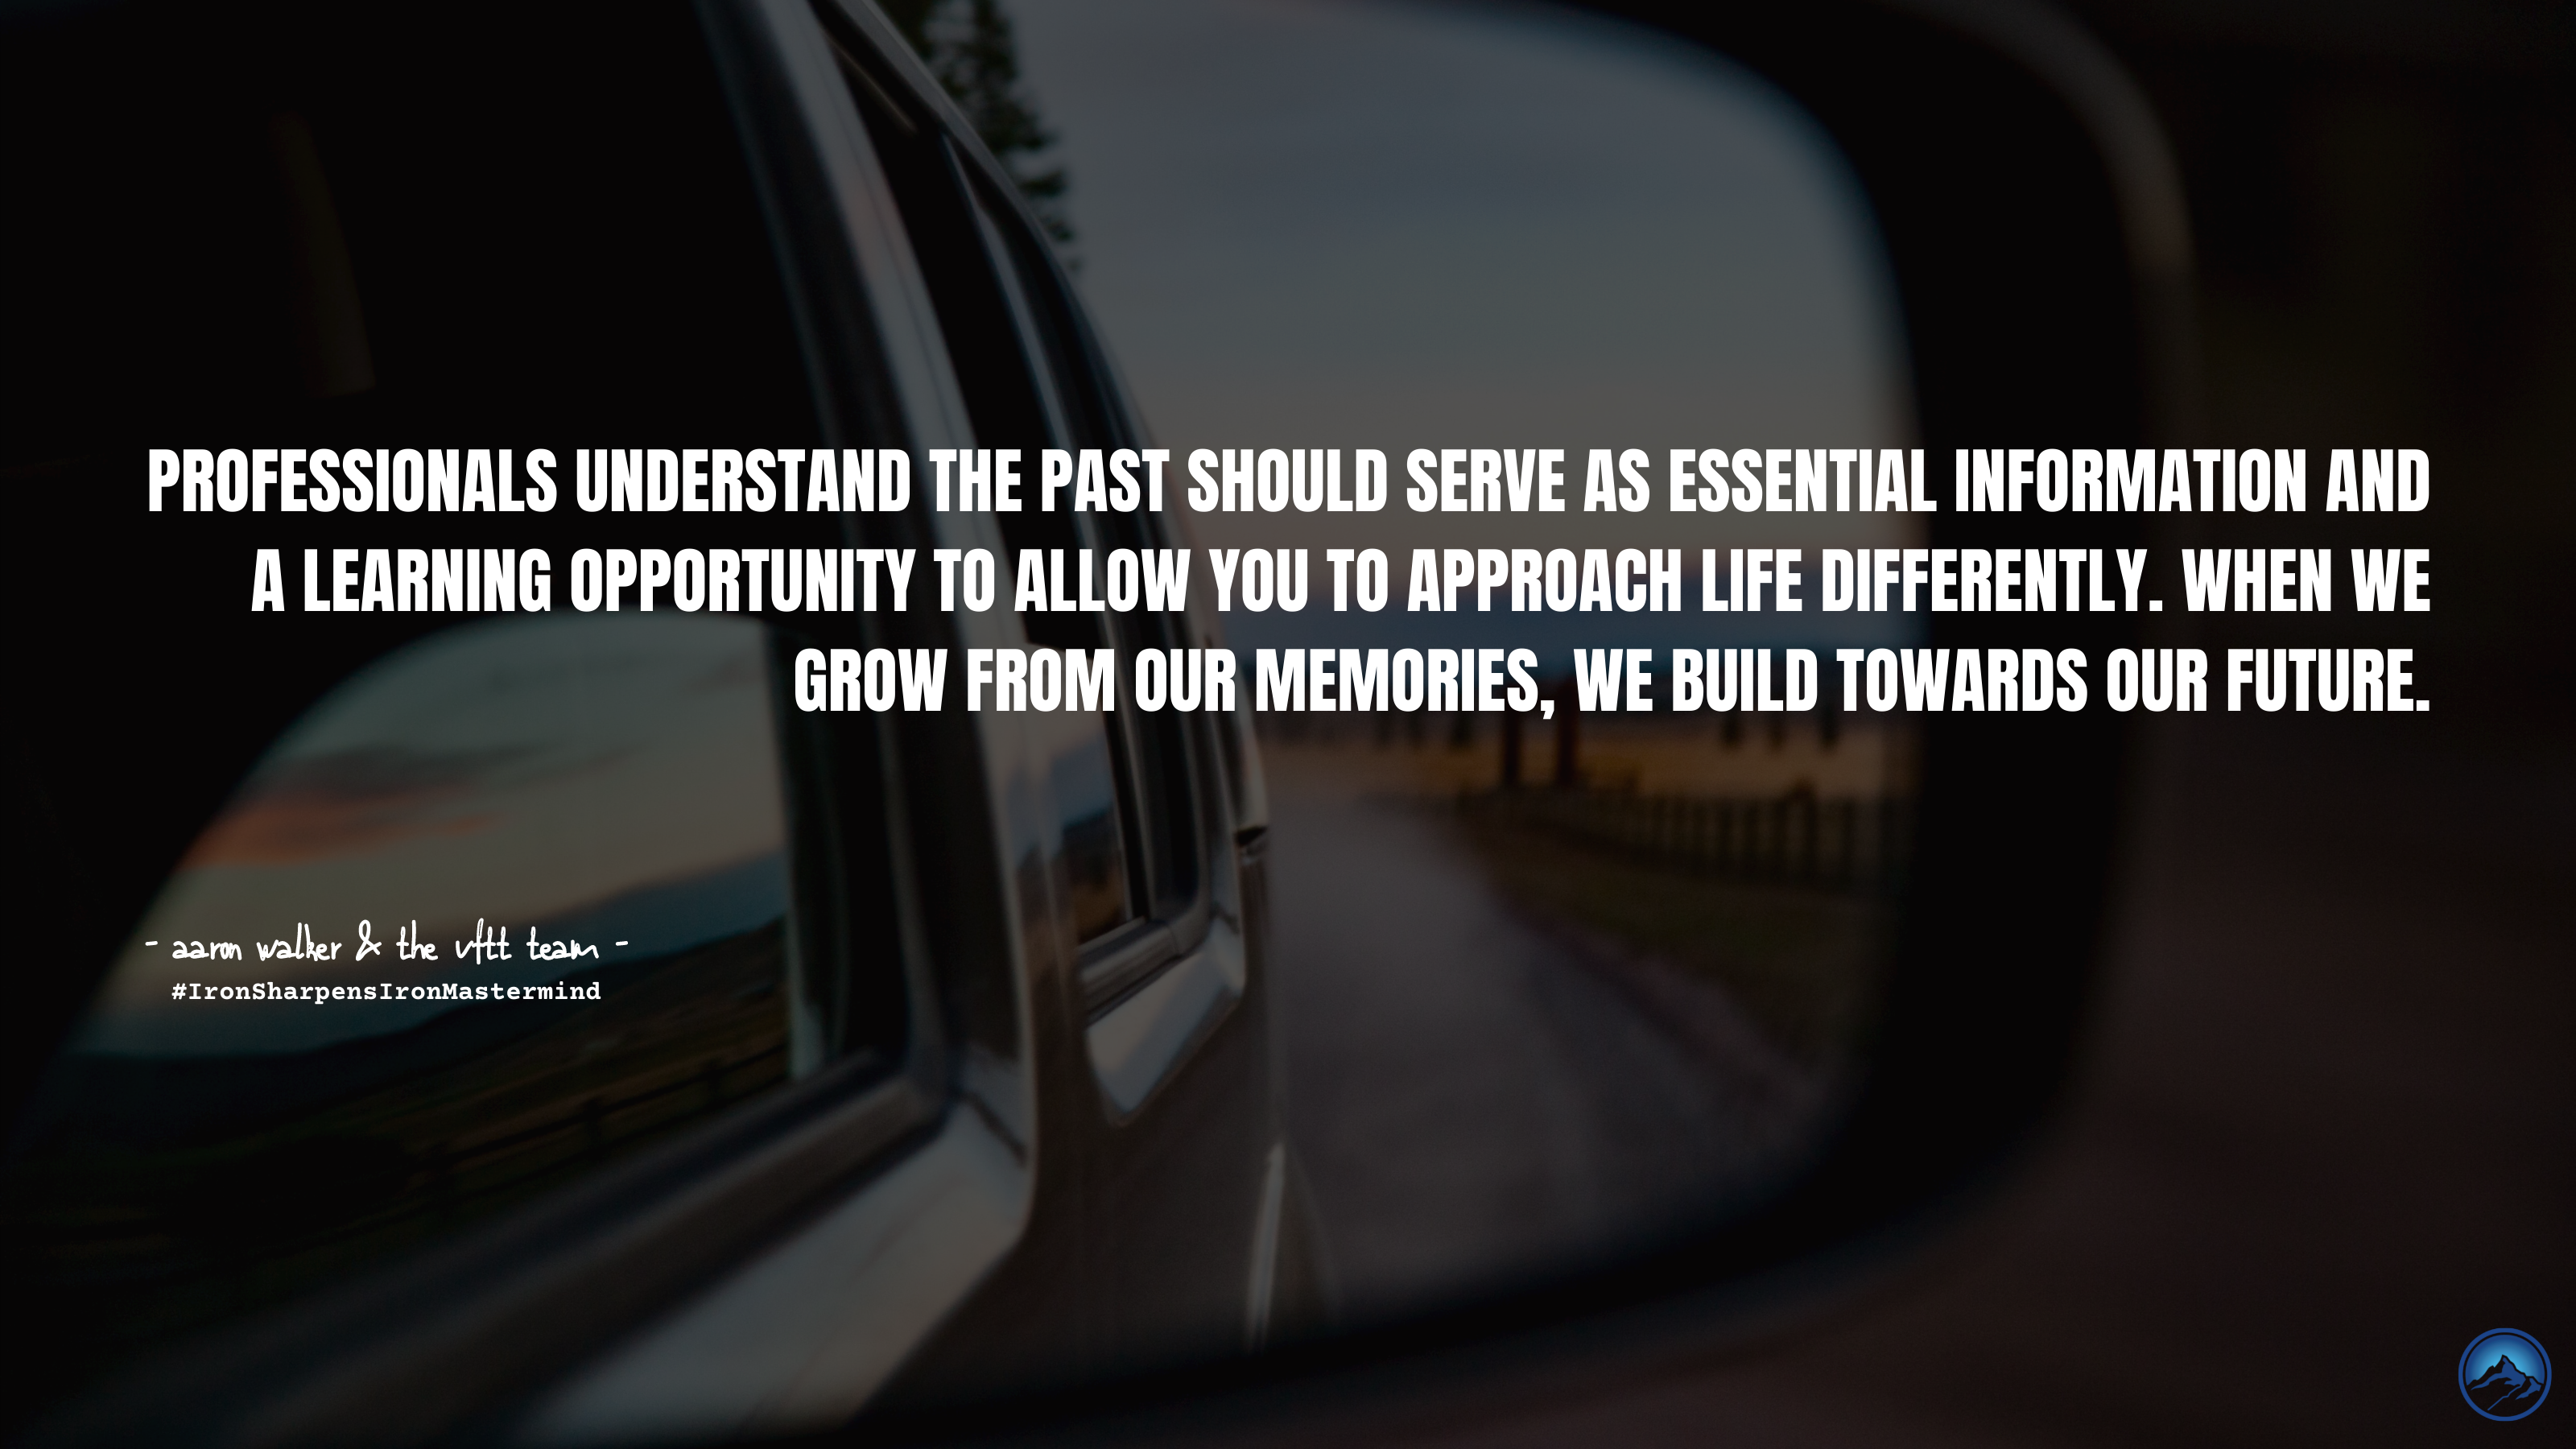 Professionals understand the past should serve as essential information and a learning opportunity to allow you to approach life differently. When we grow from our memories, we build towards our future.